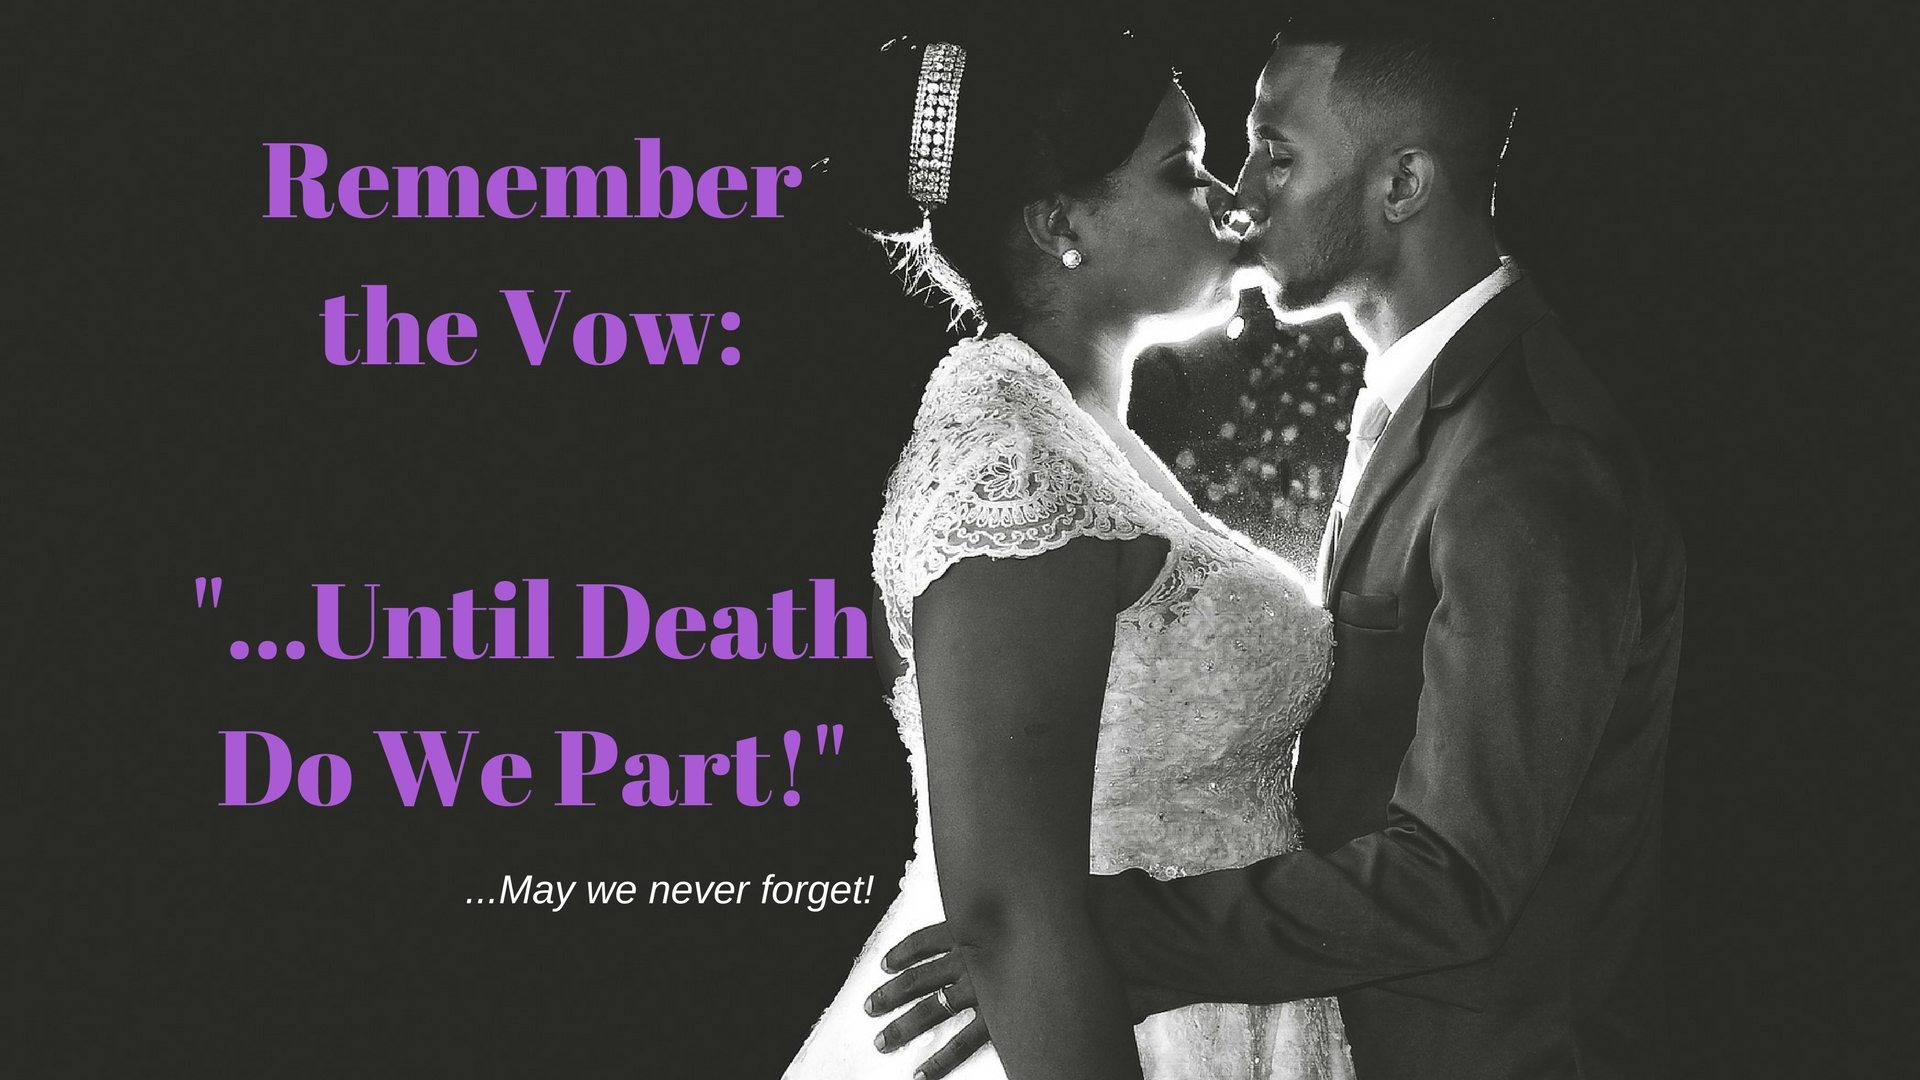 Remember the Vow failed marriages Pixabay - Canva